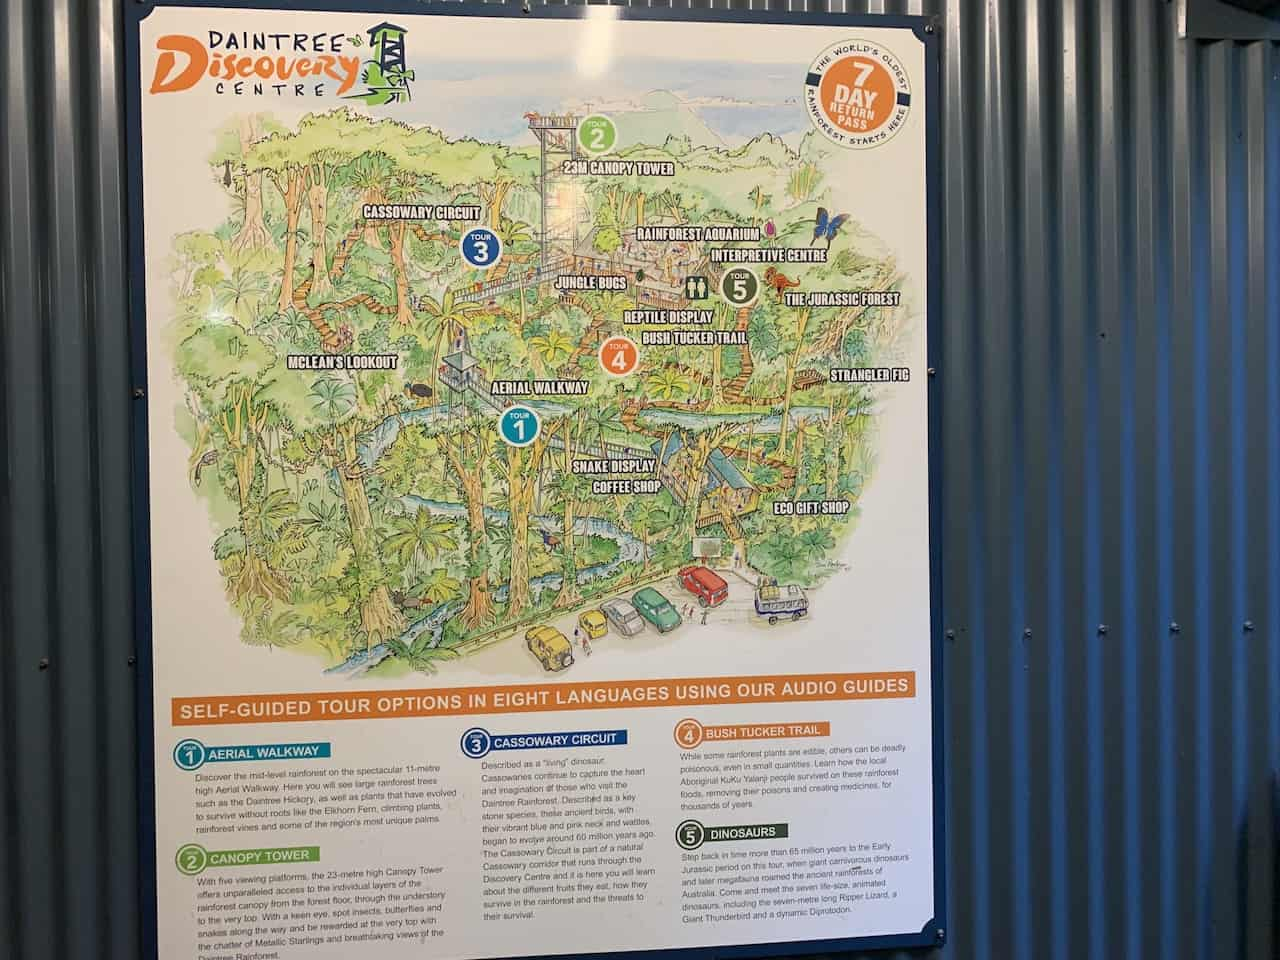 Daintree Discovery Centre Map